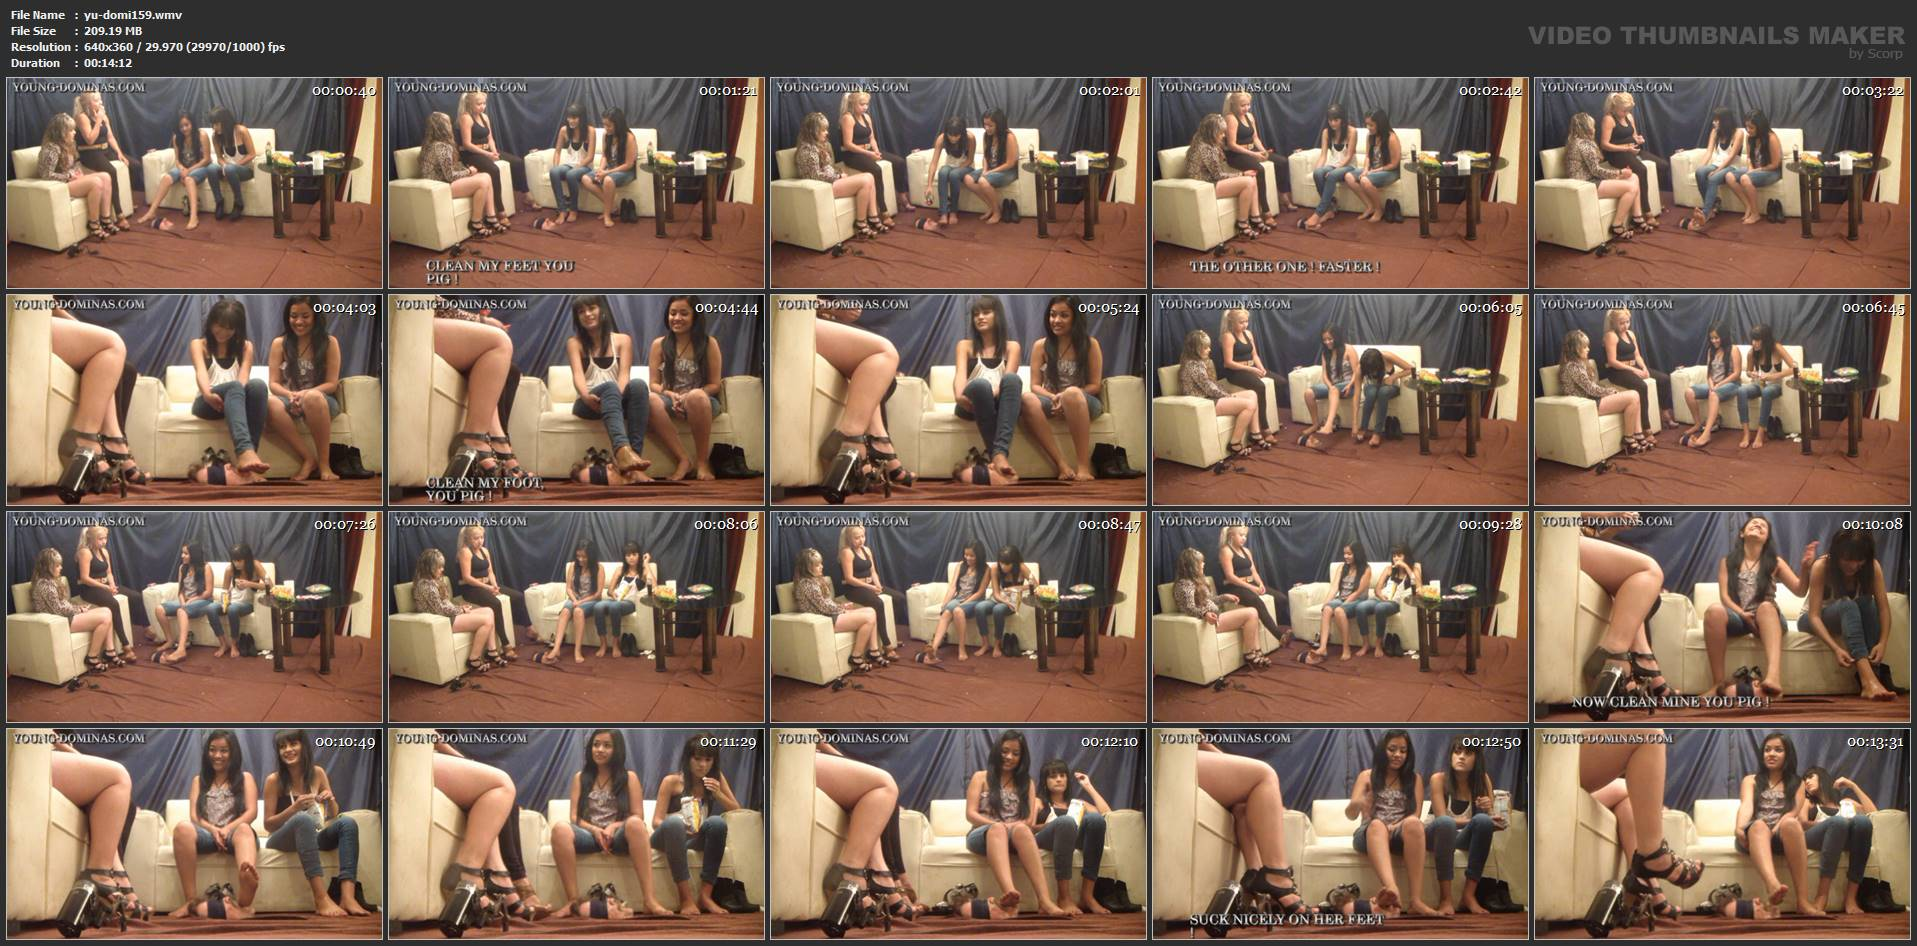 [YOUNG-DOMINAS] Poop Eater In Floor Integrated Part 2 [LQ][360p][WMV]